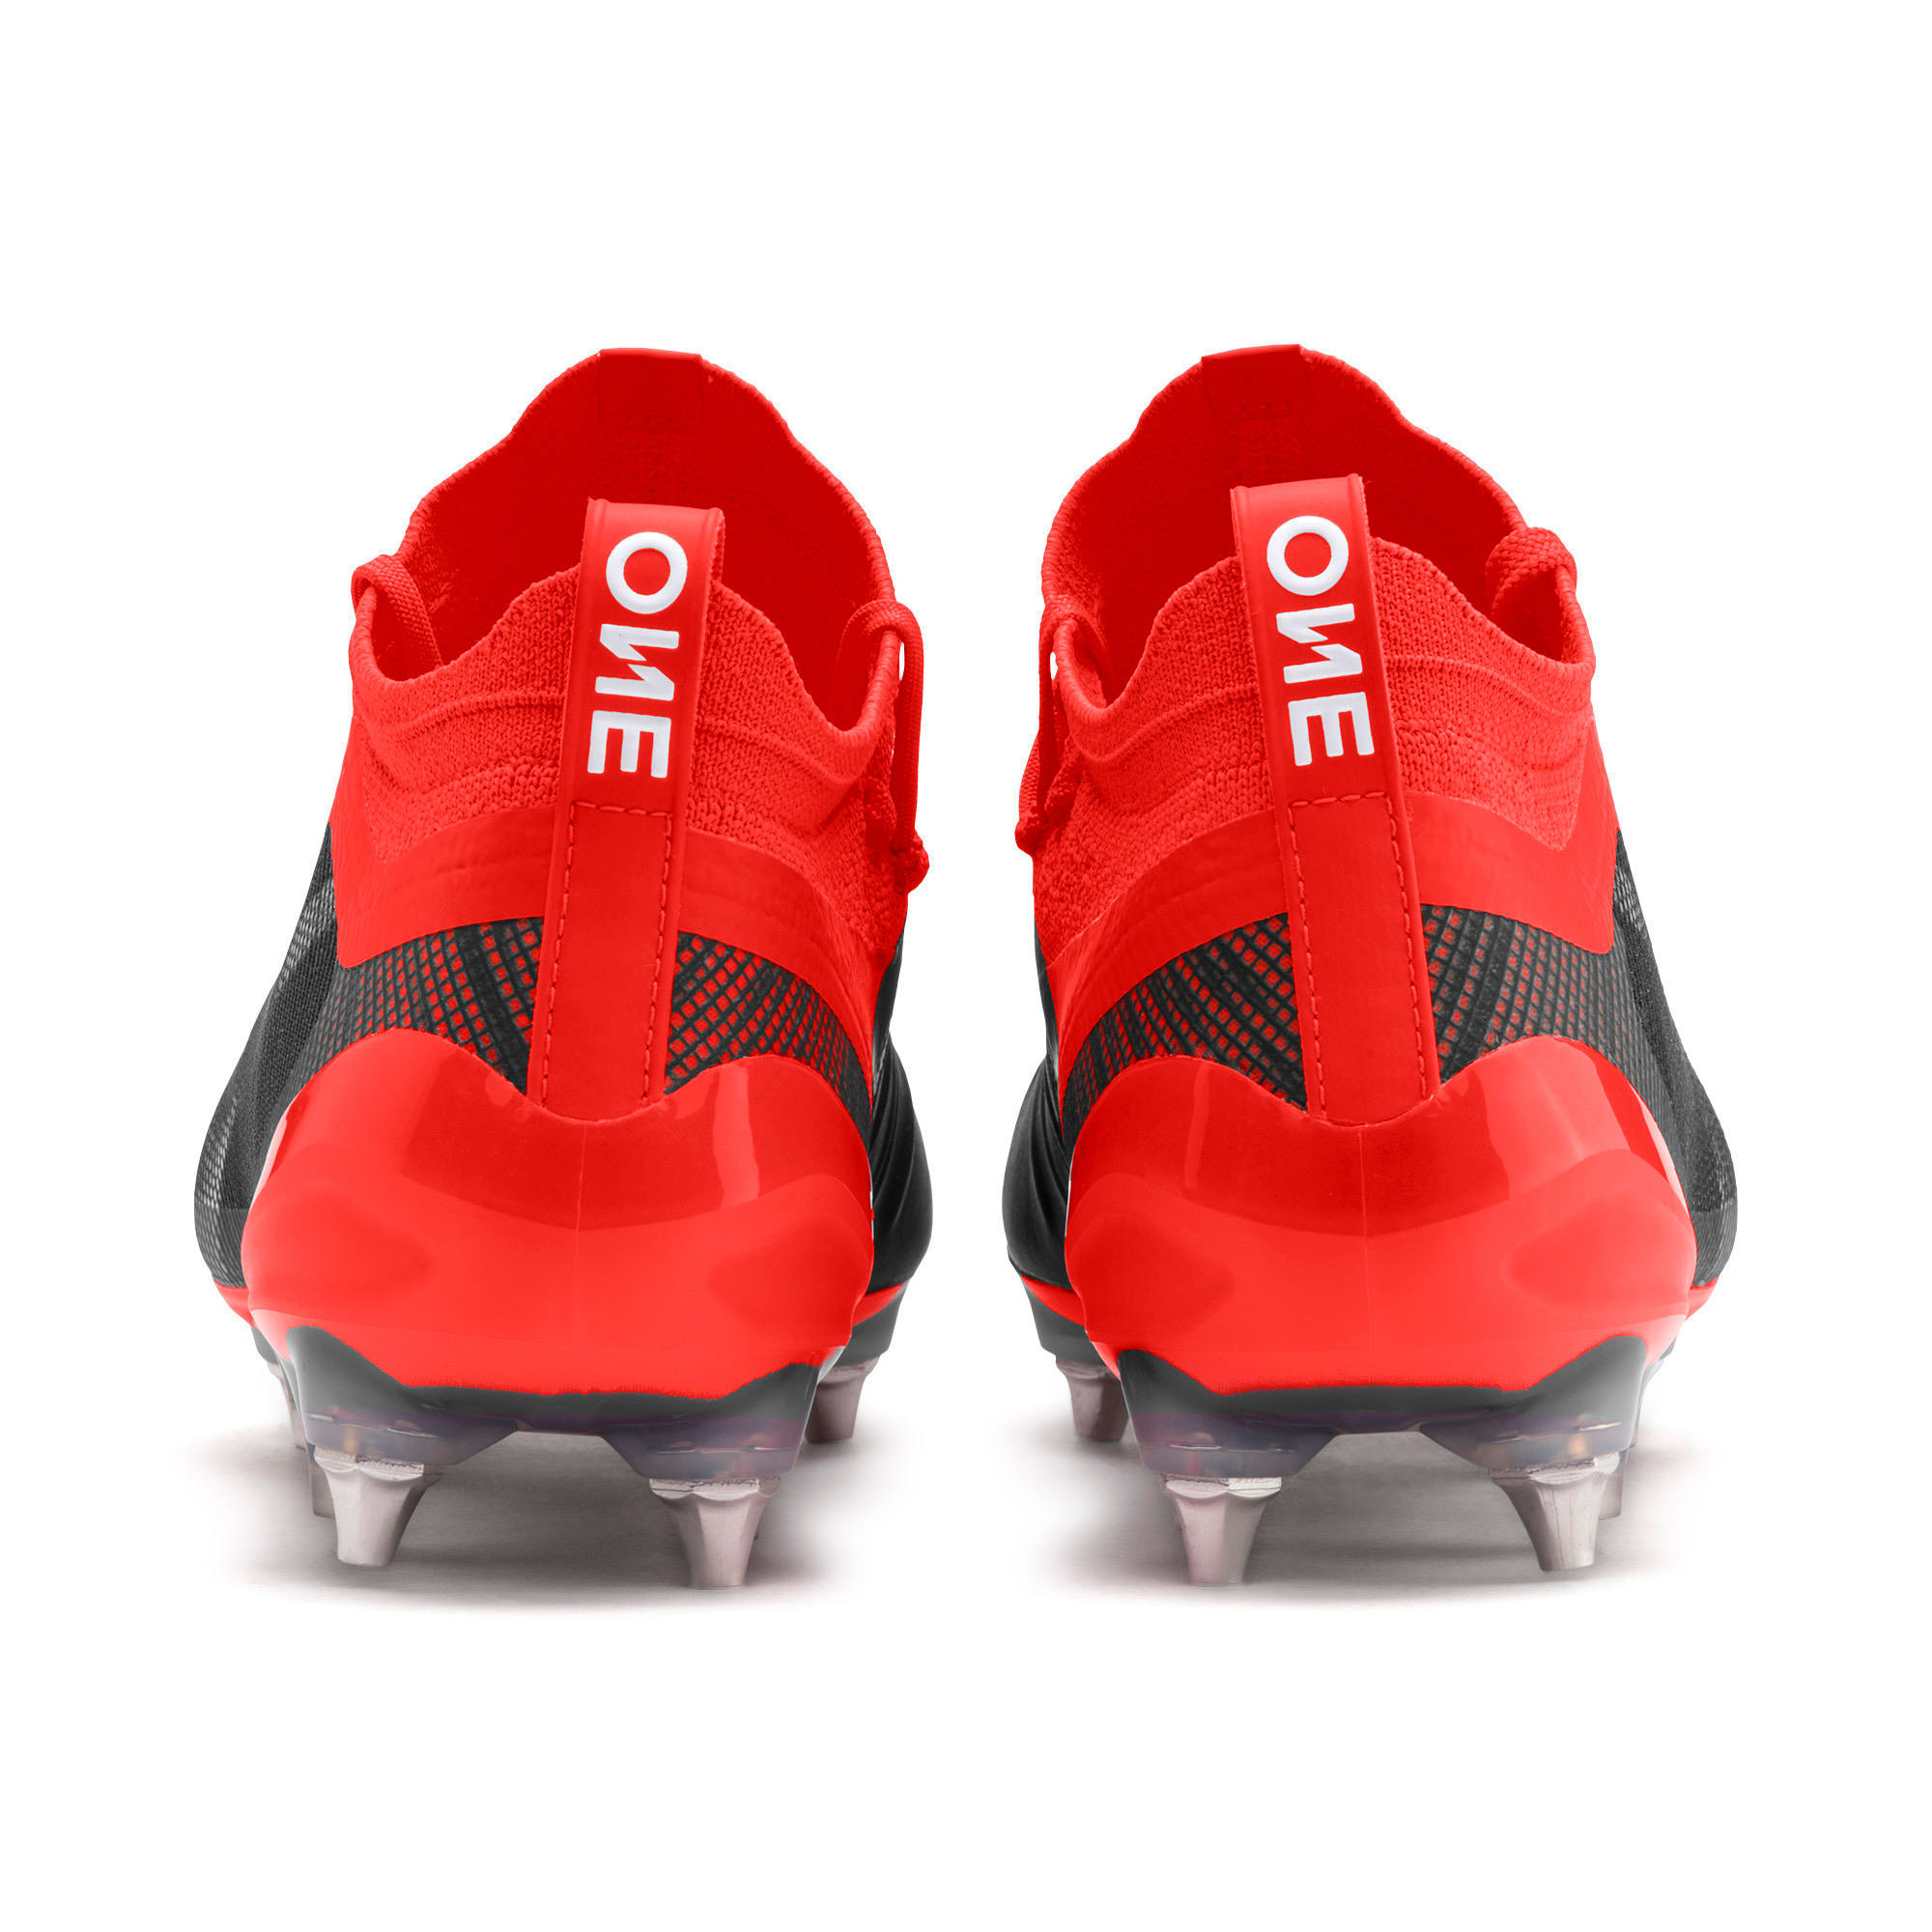 Thumbnail 4 of PUMA ONE 5.1 MxSG Football Boots, Black-Nrgy Red-Aged Silver, medium